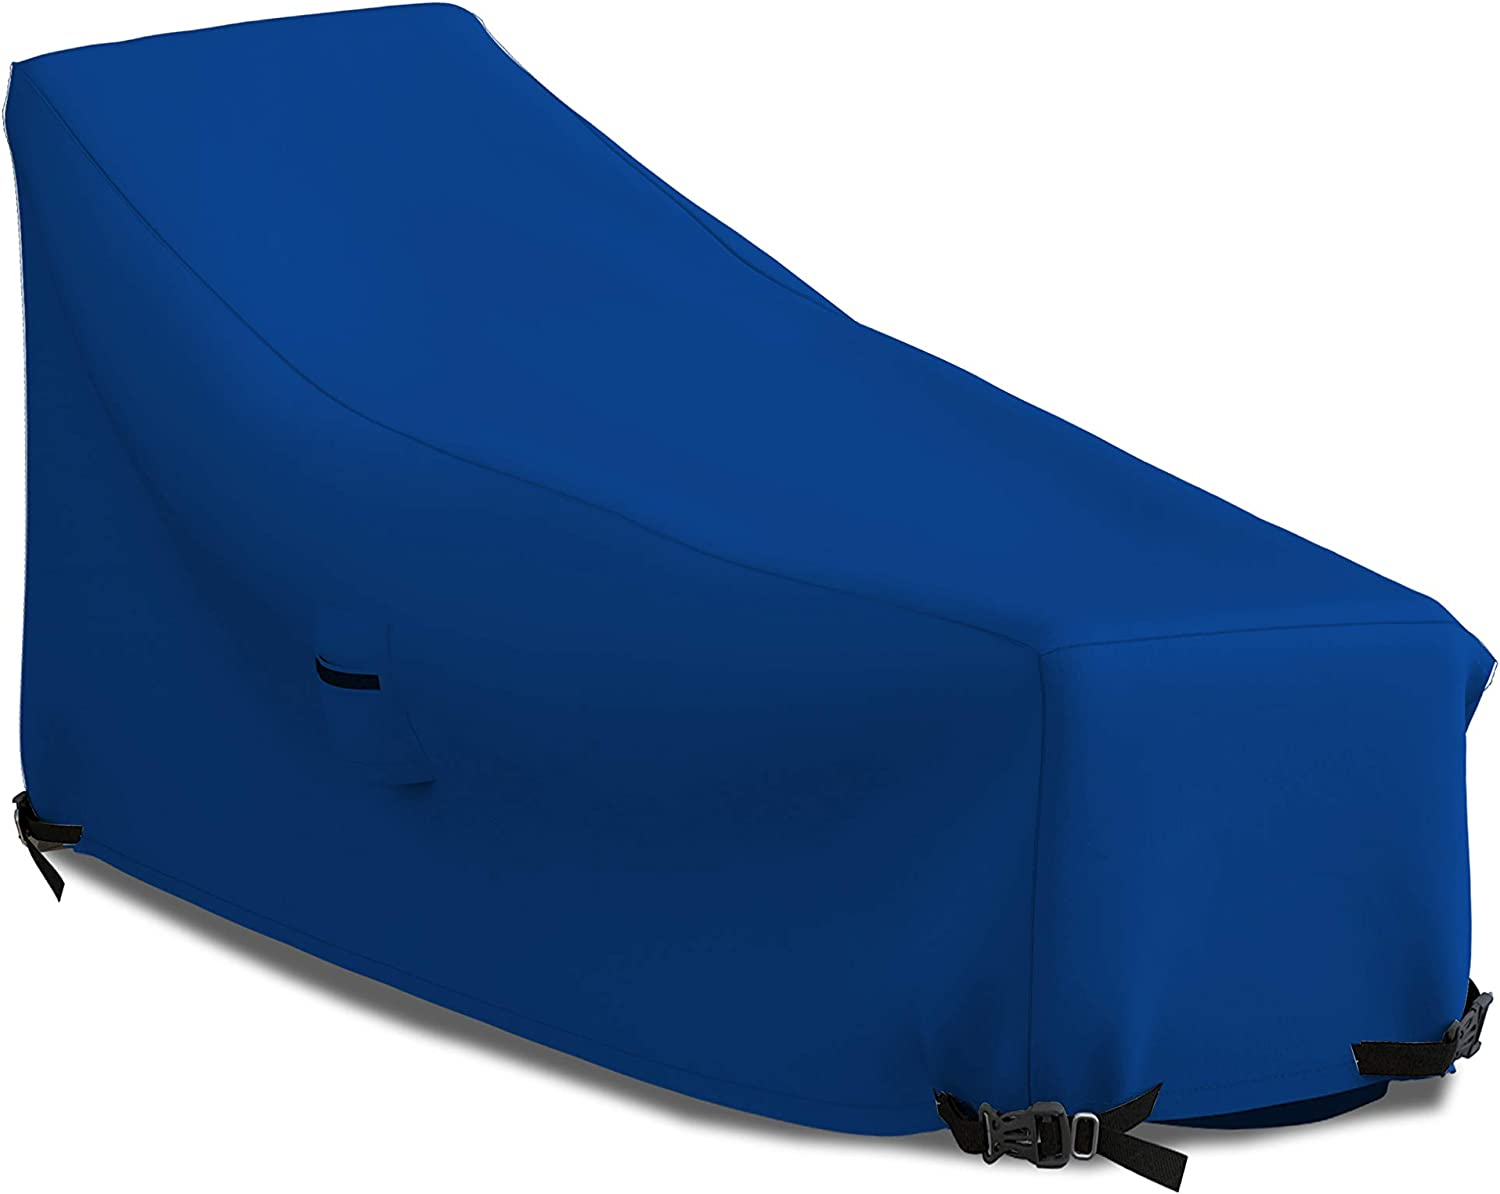 Patio Manufacturer OFFicial shop Chaise Lounge Cover 18 Oz 100% Ranking TOP14 Resist Waterproof Weather -